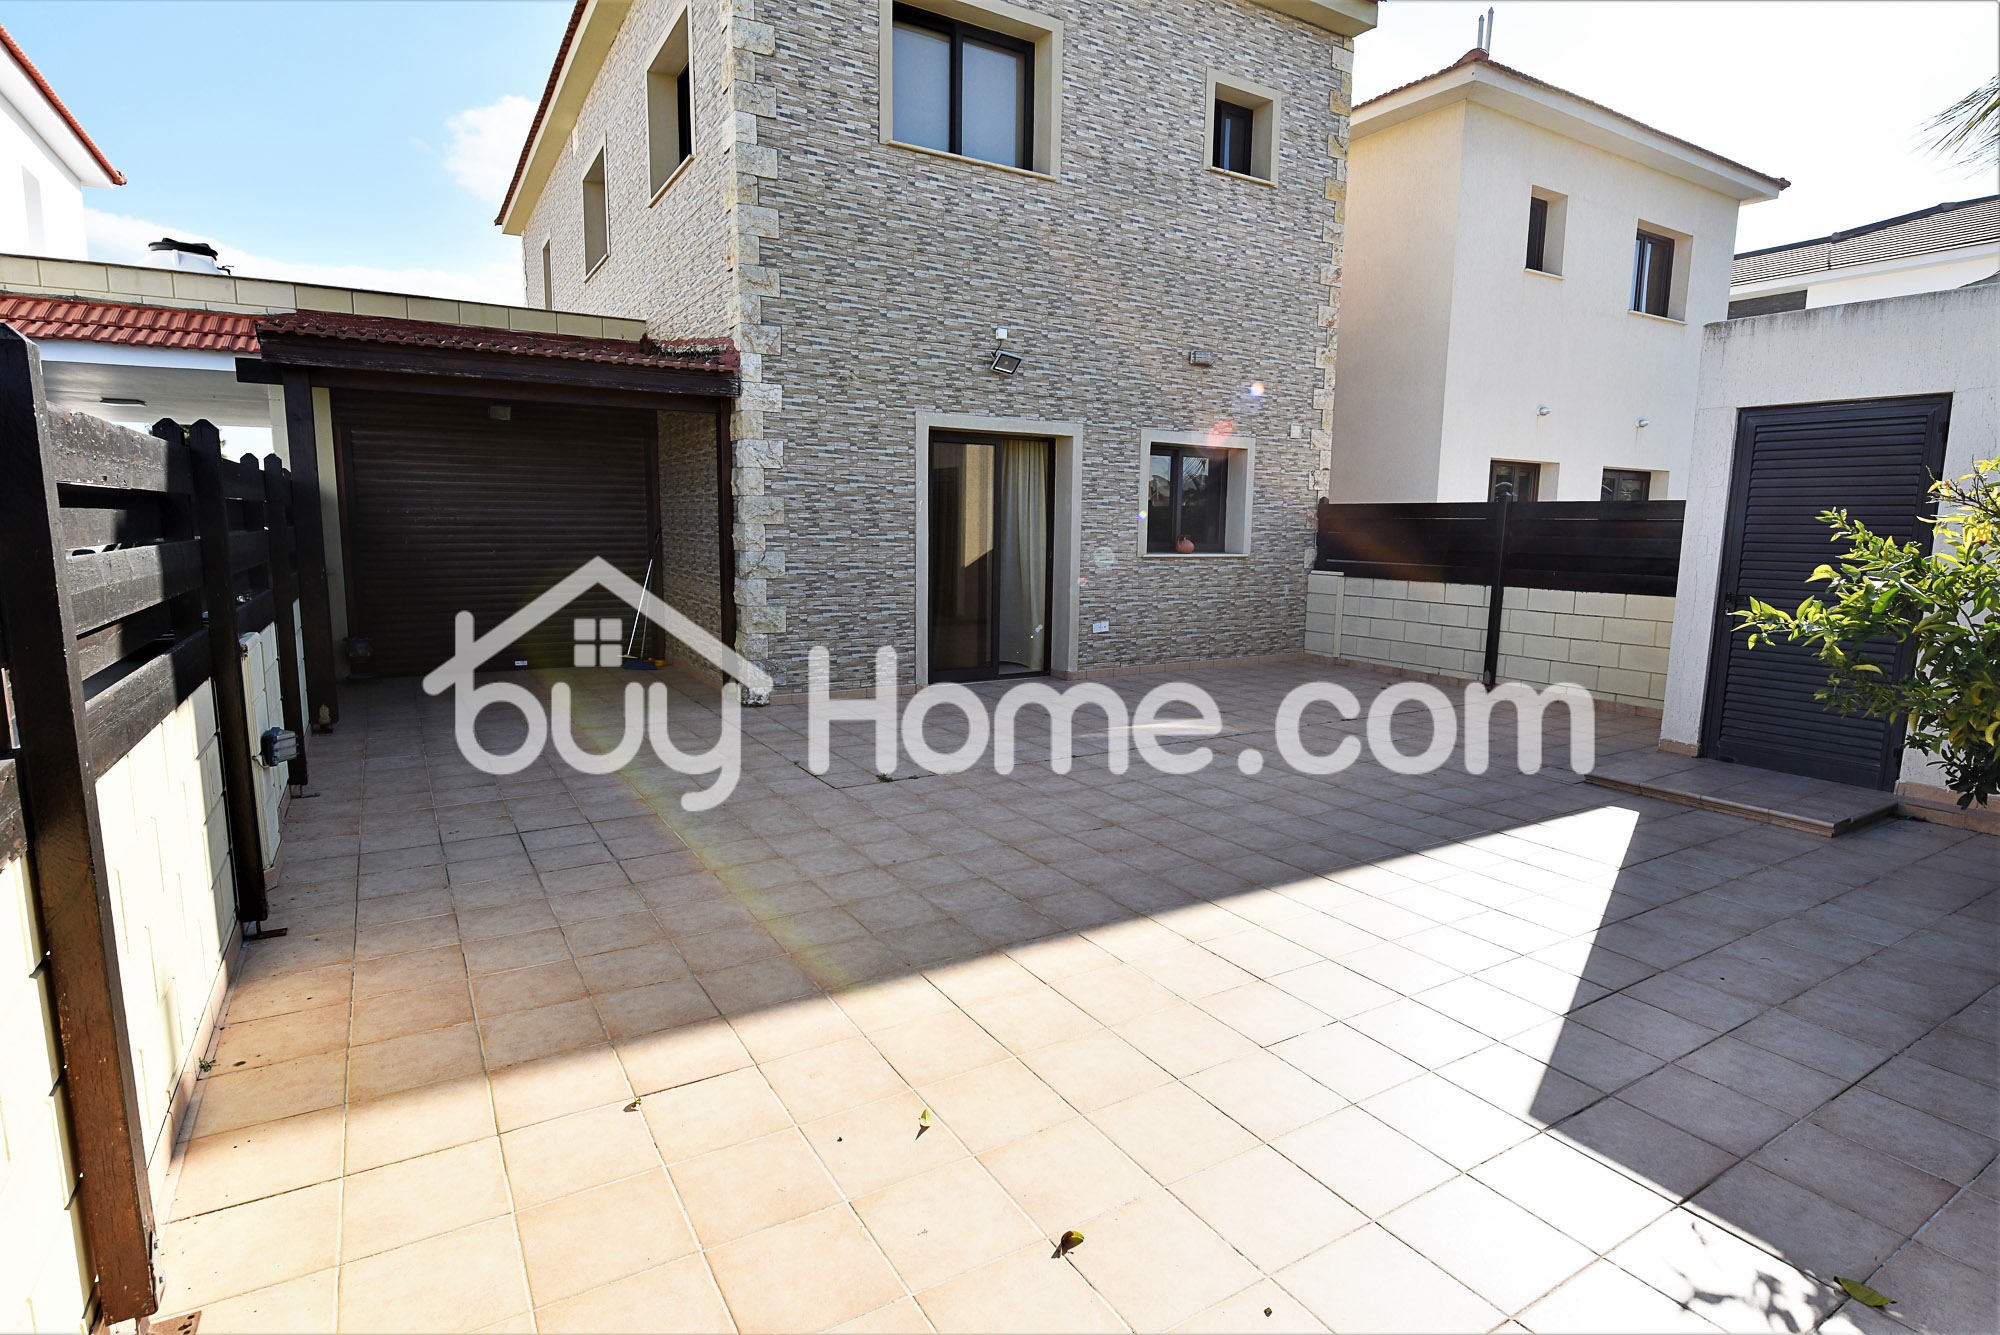 3 Bedroom Link Detached House | BuyHome